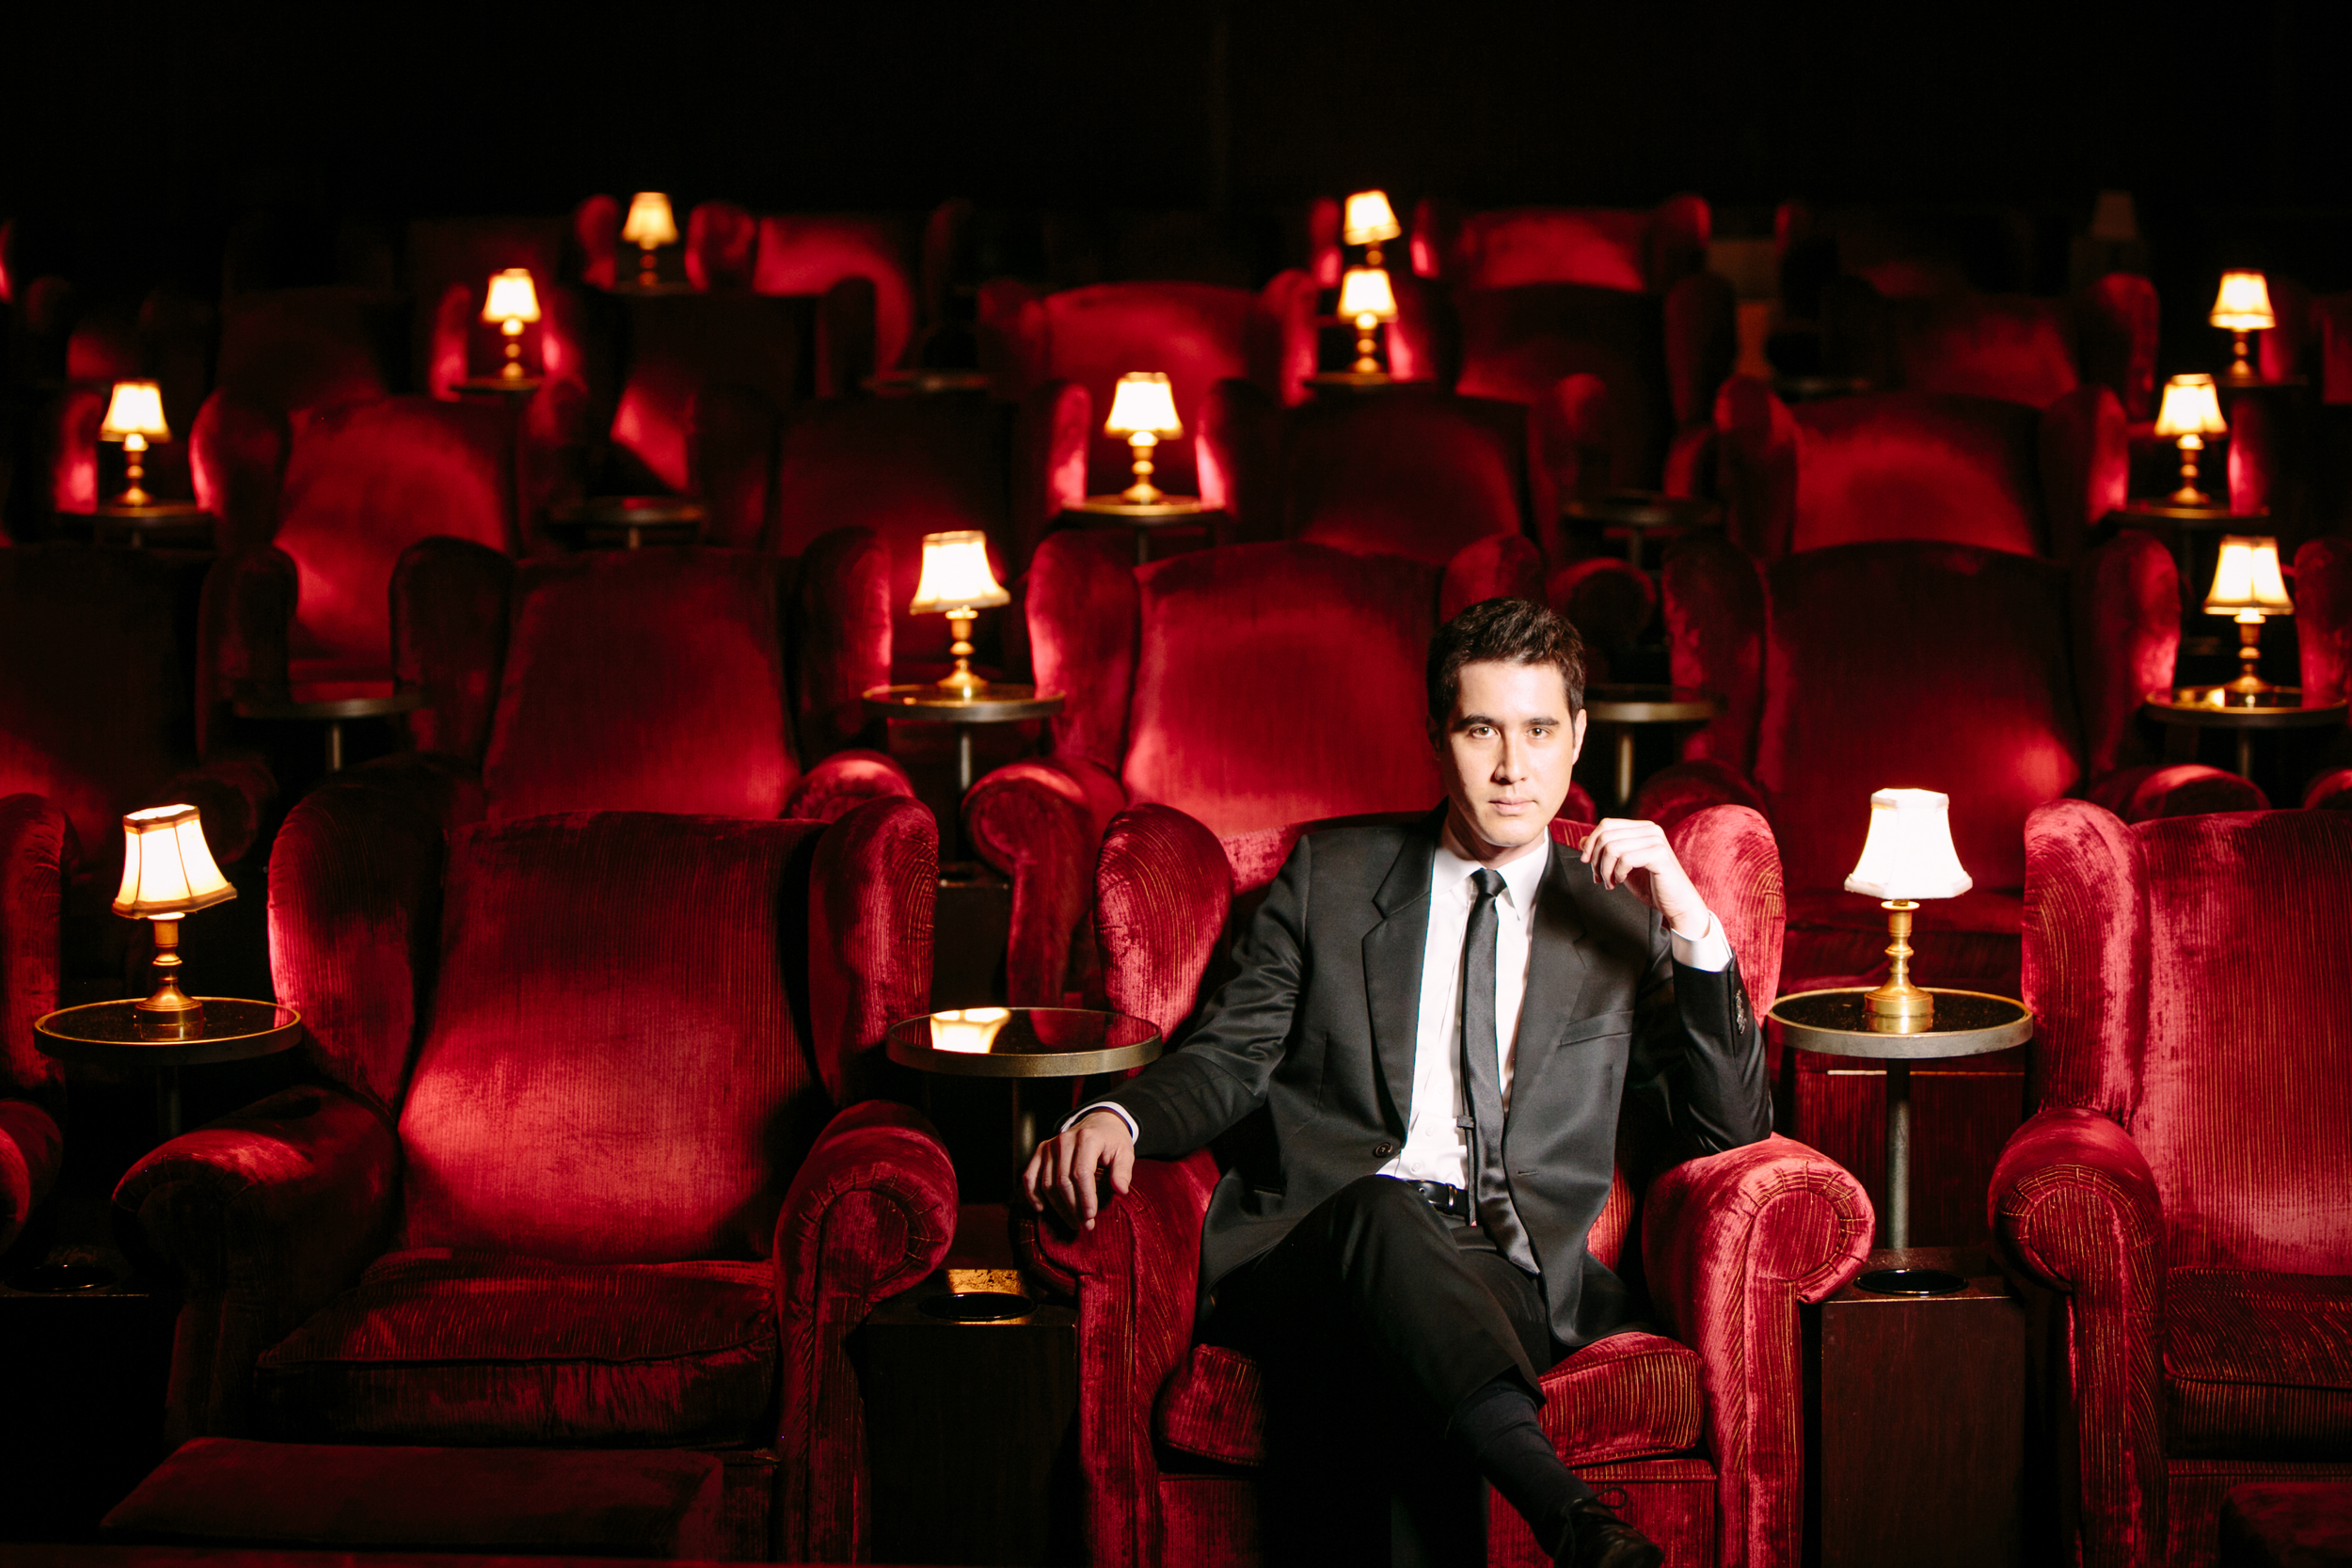 Andrew Kwong immersive show from magician david kwong, the enigmatist